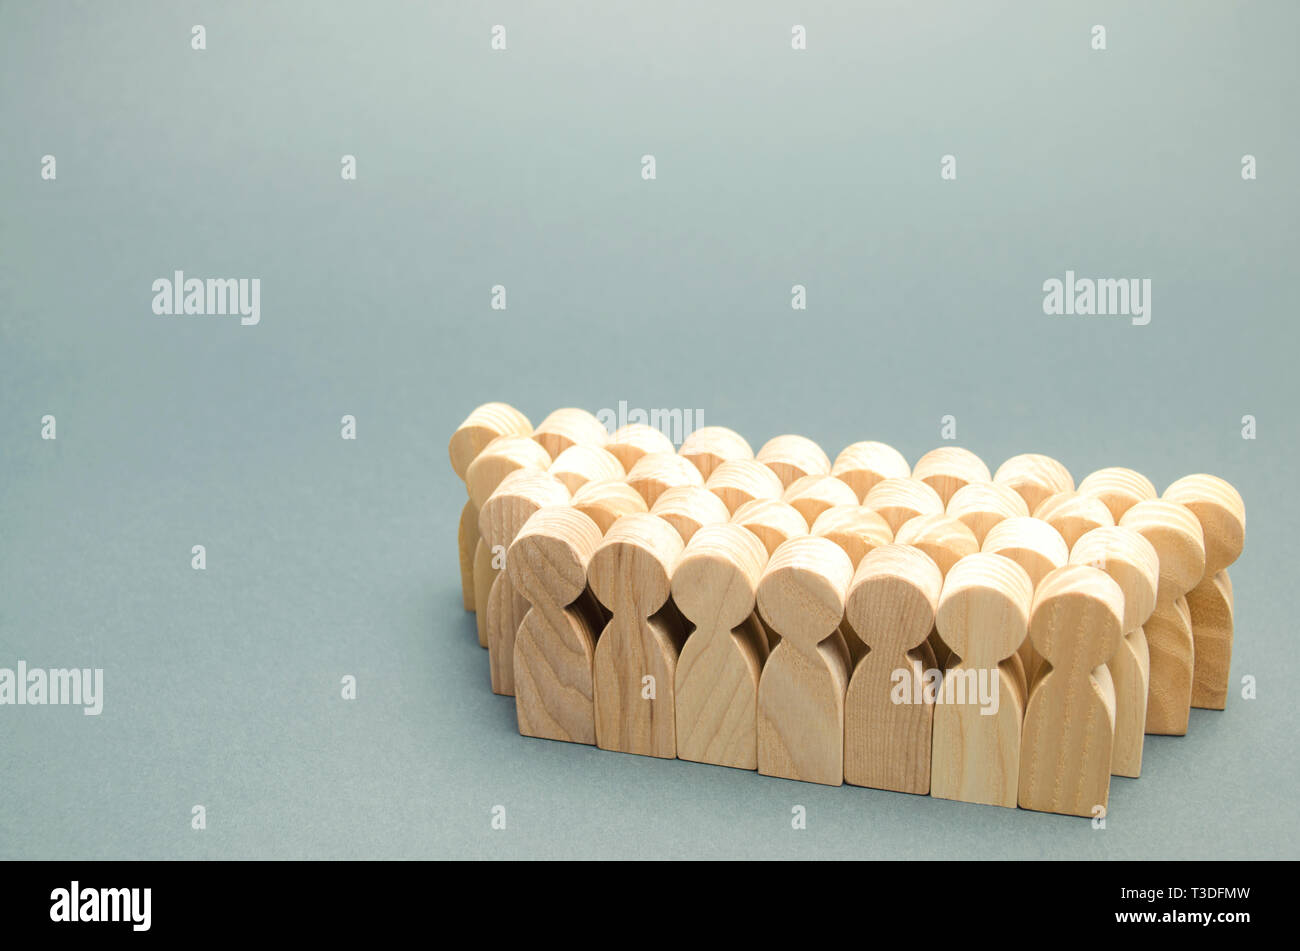 The crowd of wooden figures of people. Concept of business team. Labor collective. Teamwork. Employees. Human Resource Management. Labor market. Demog - Stock Image